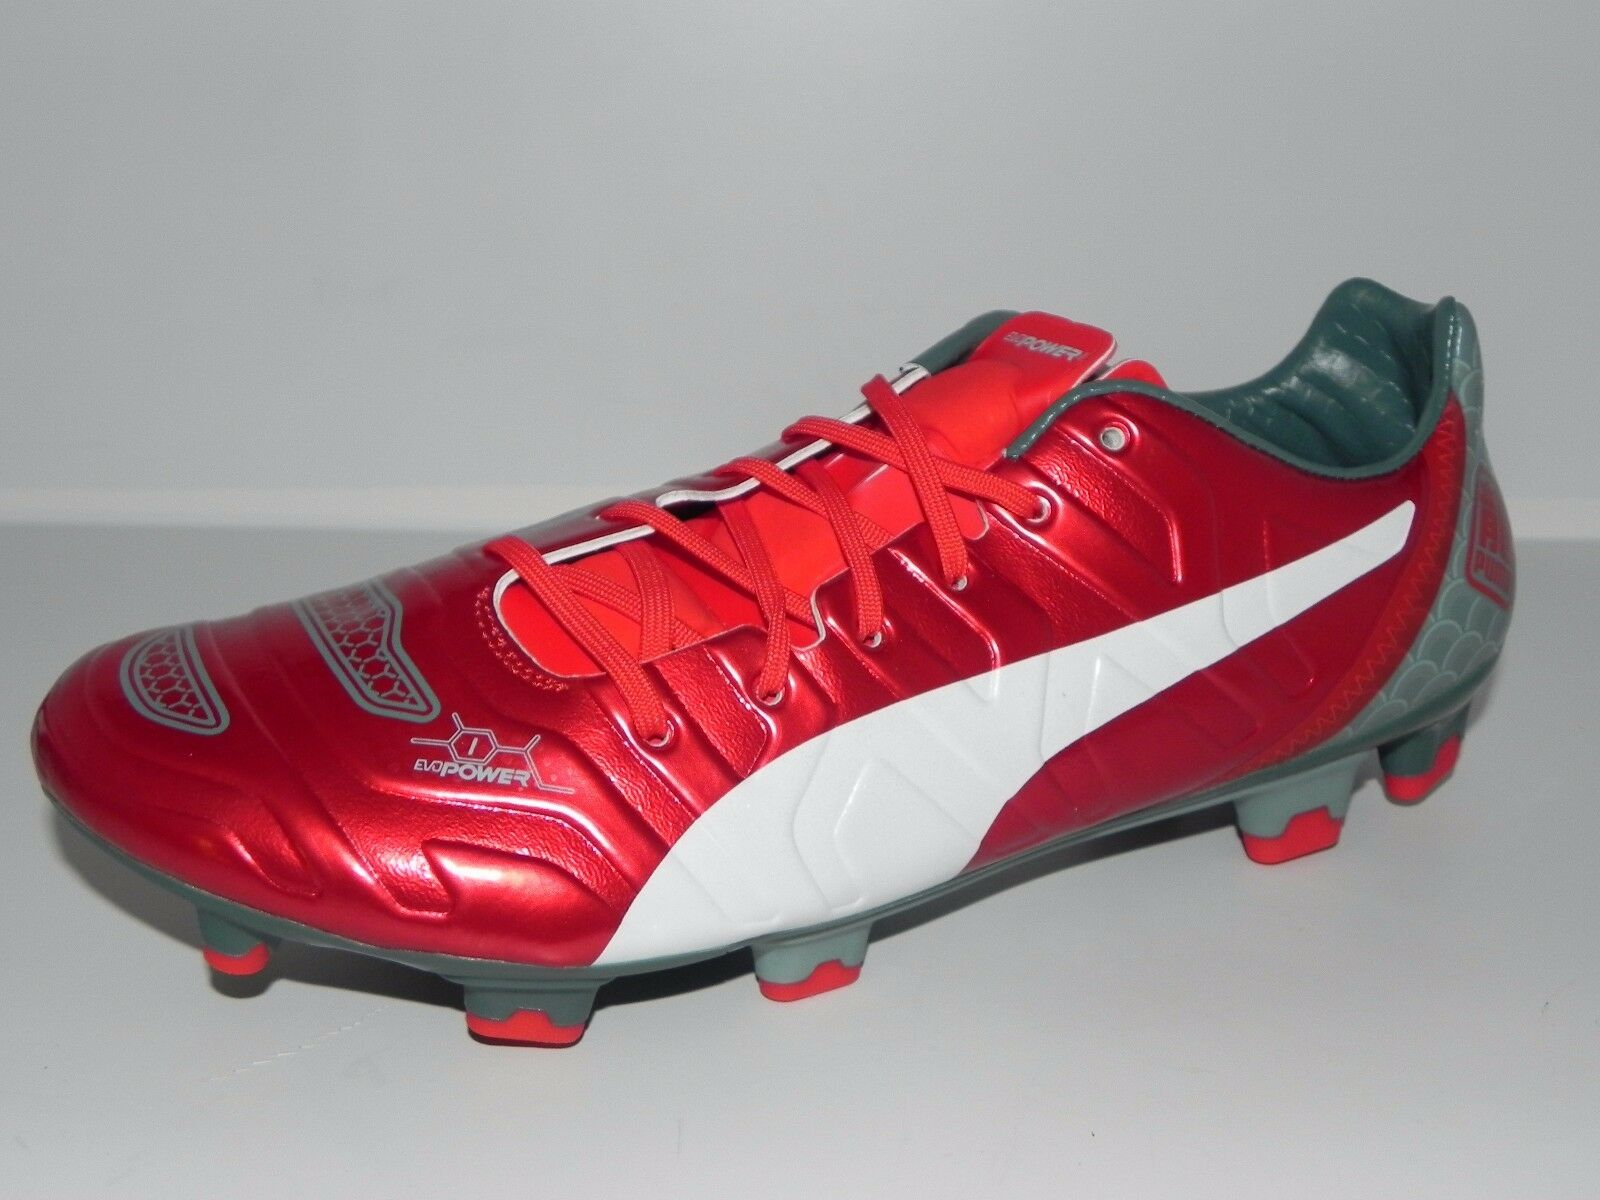 PUMA evoPOWER 1.2 Graphic Men's Soccer Cleats 103423 01 (Size 7.5)